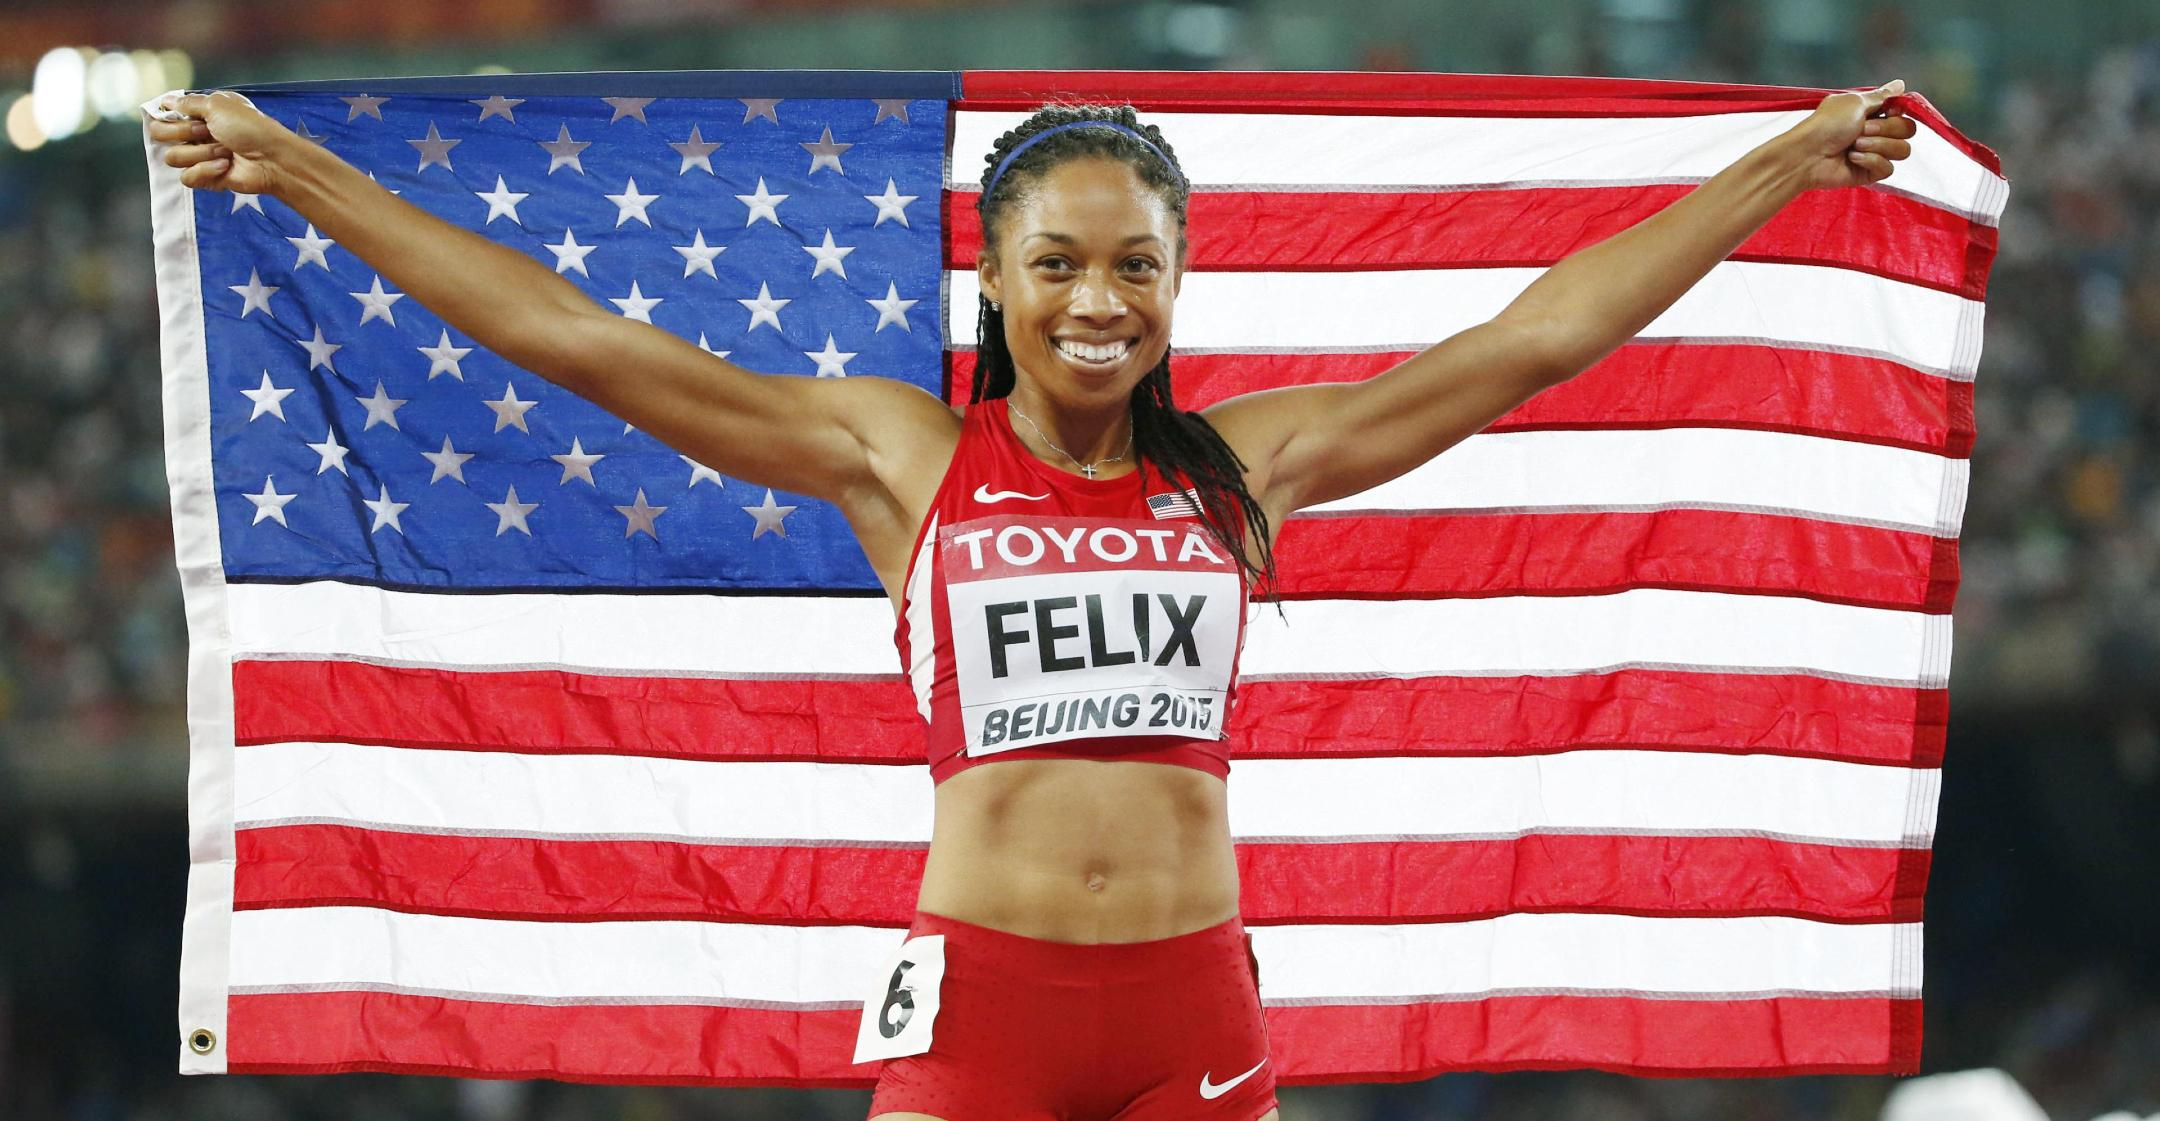 final olympics allyson felix hopes to be remembered someone who fought for women